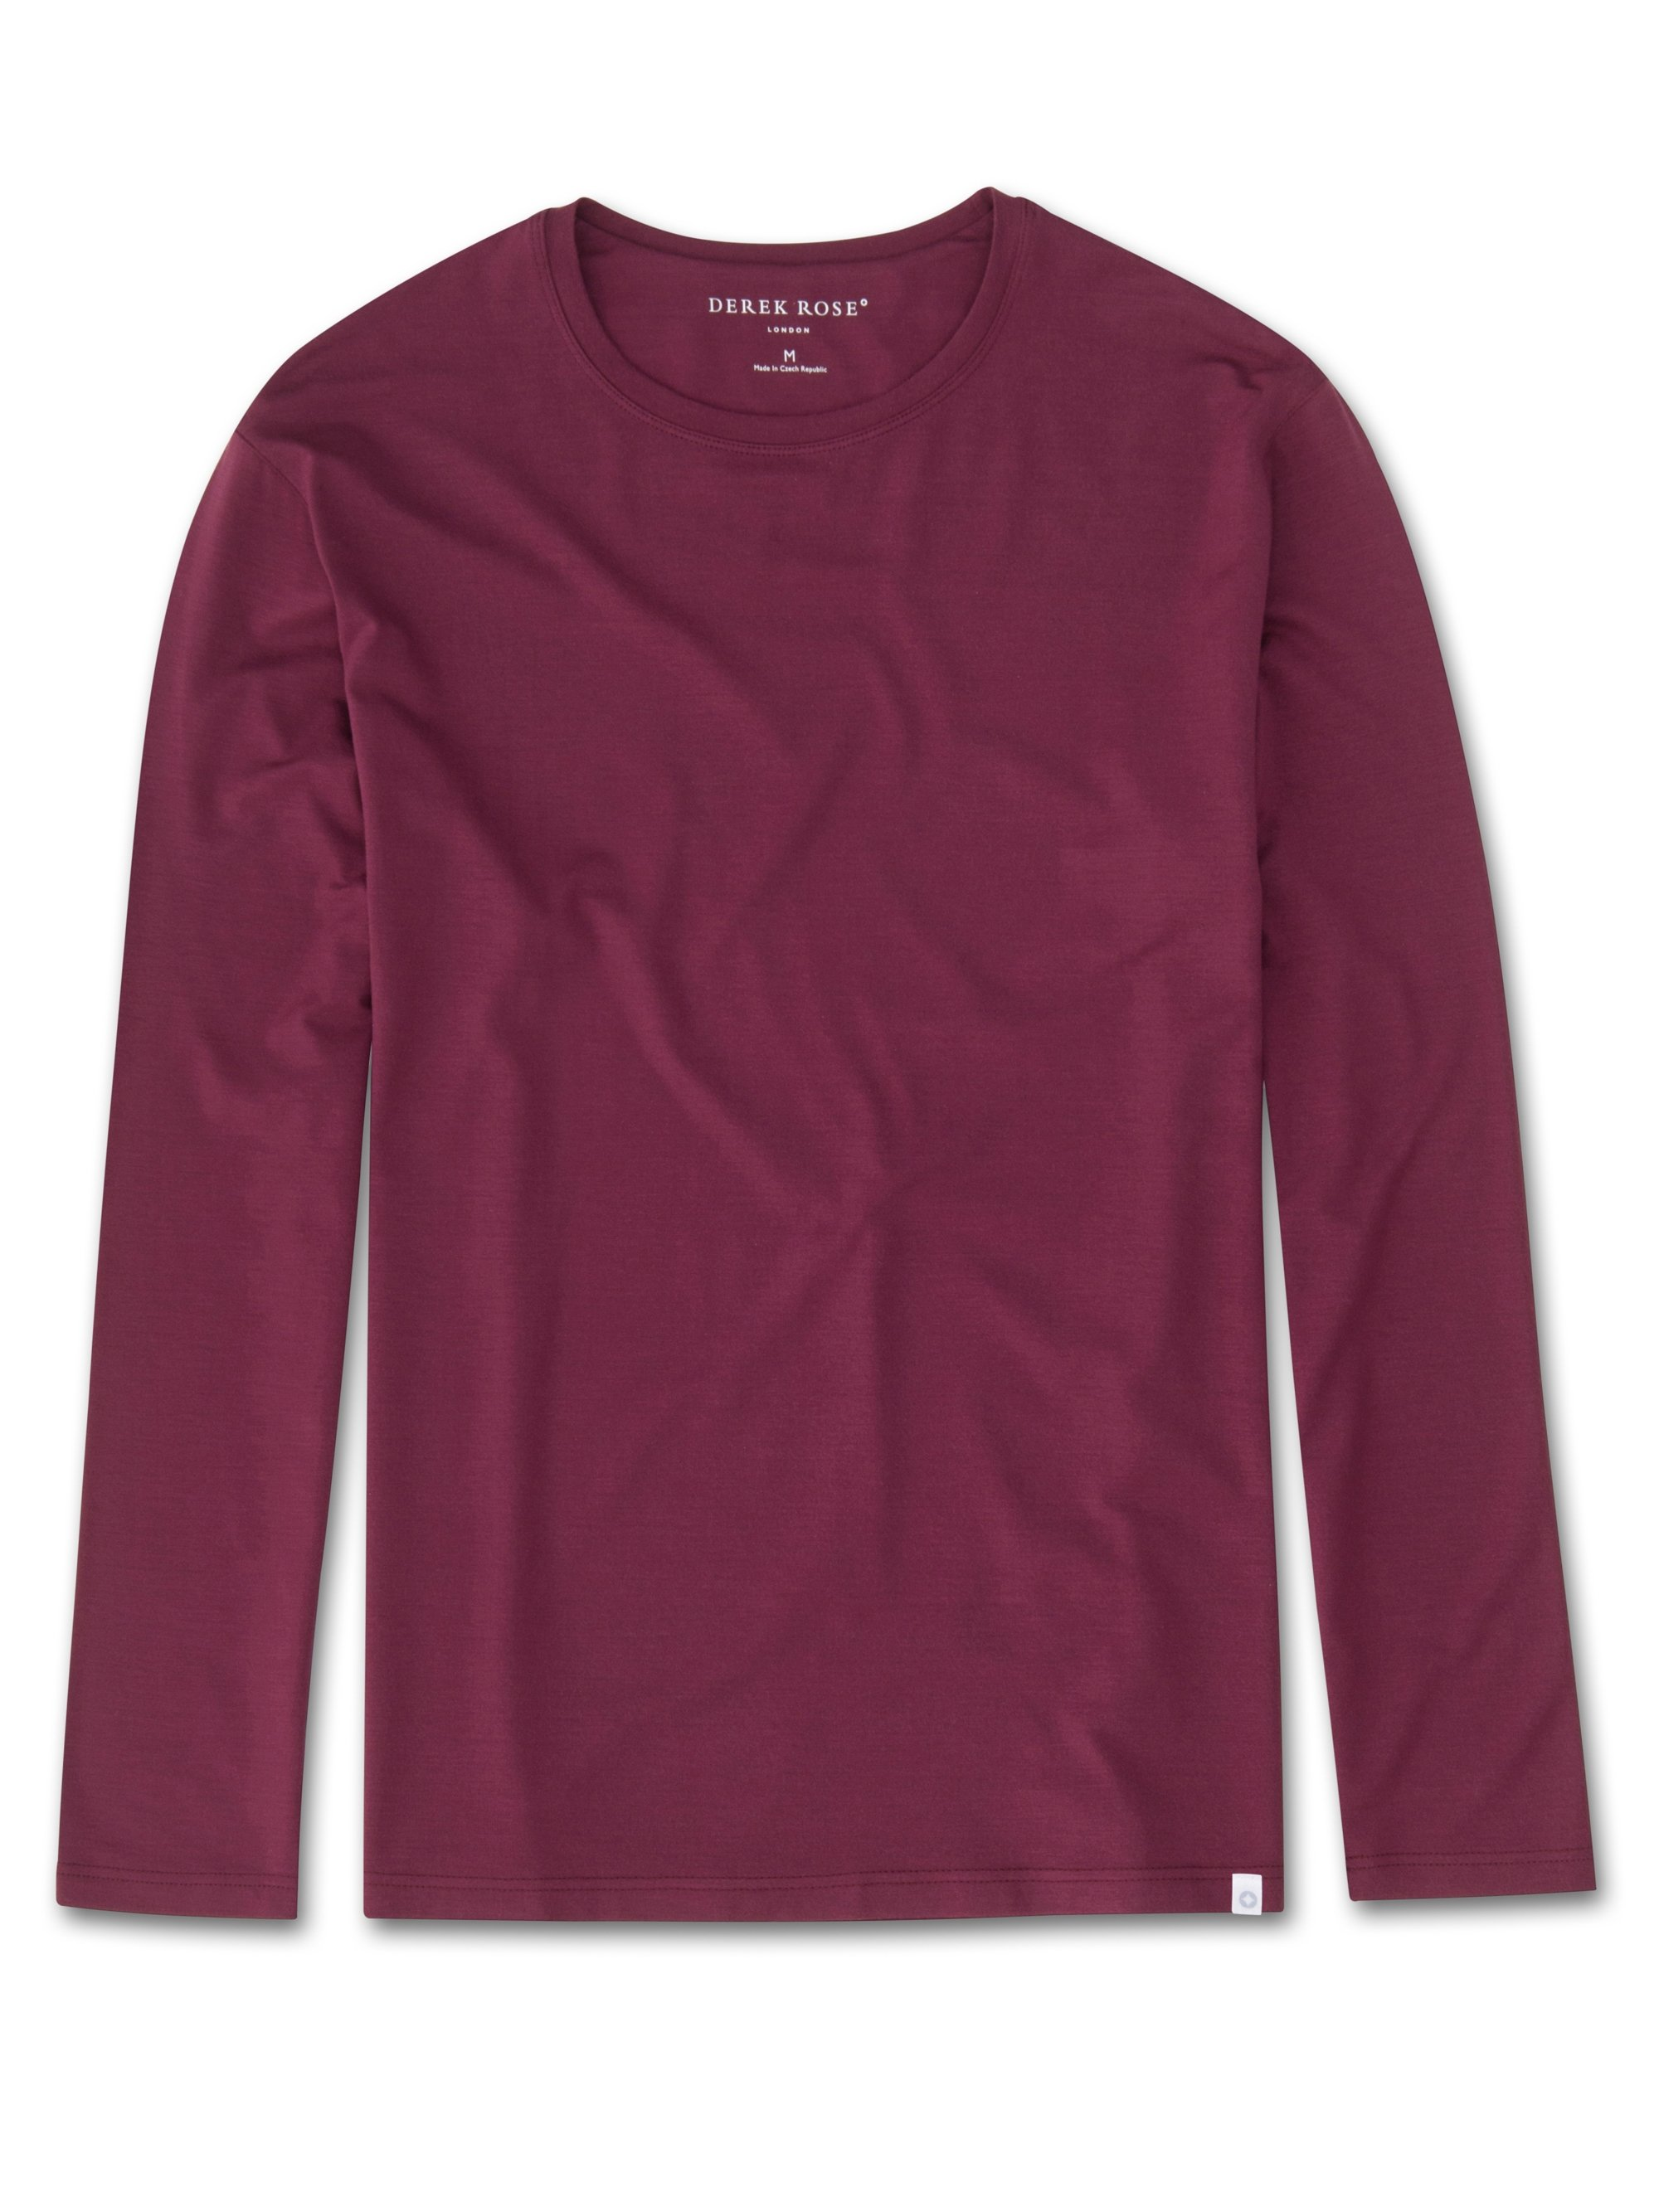 Men's Long Sleeve T-Shirt Basel 5 Micro Modal Stretch Burgundy